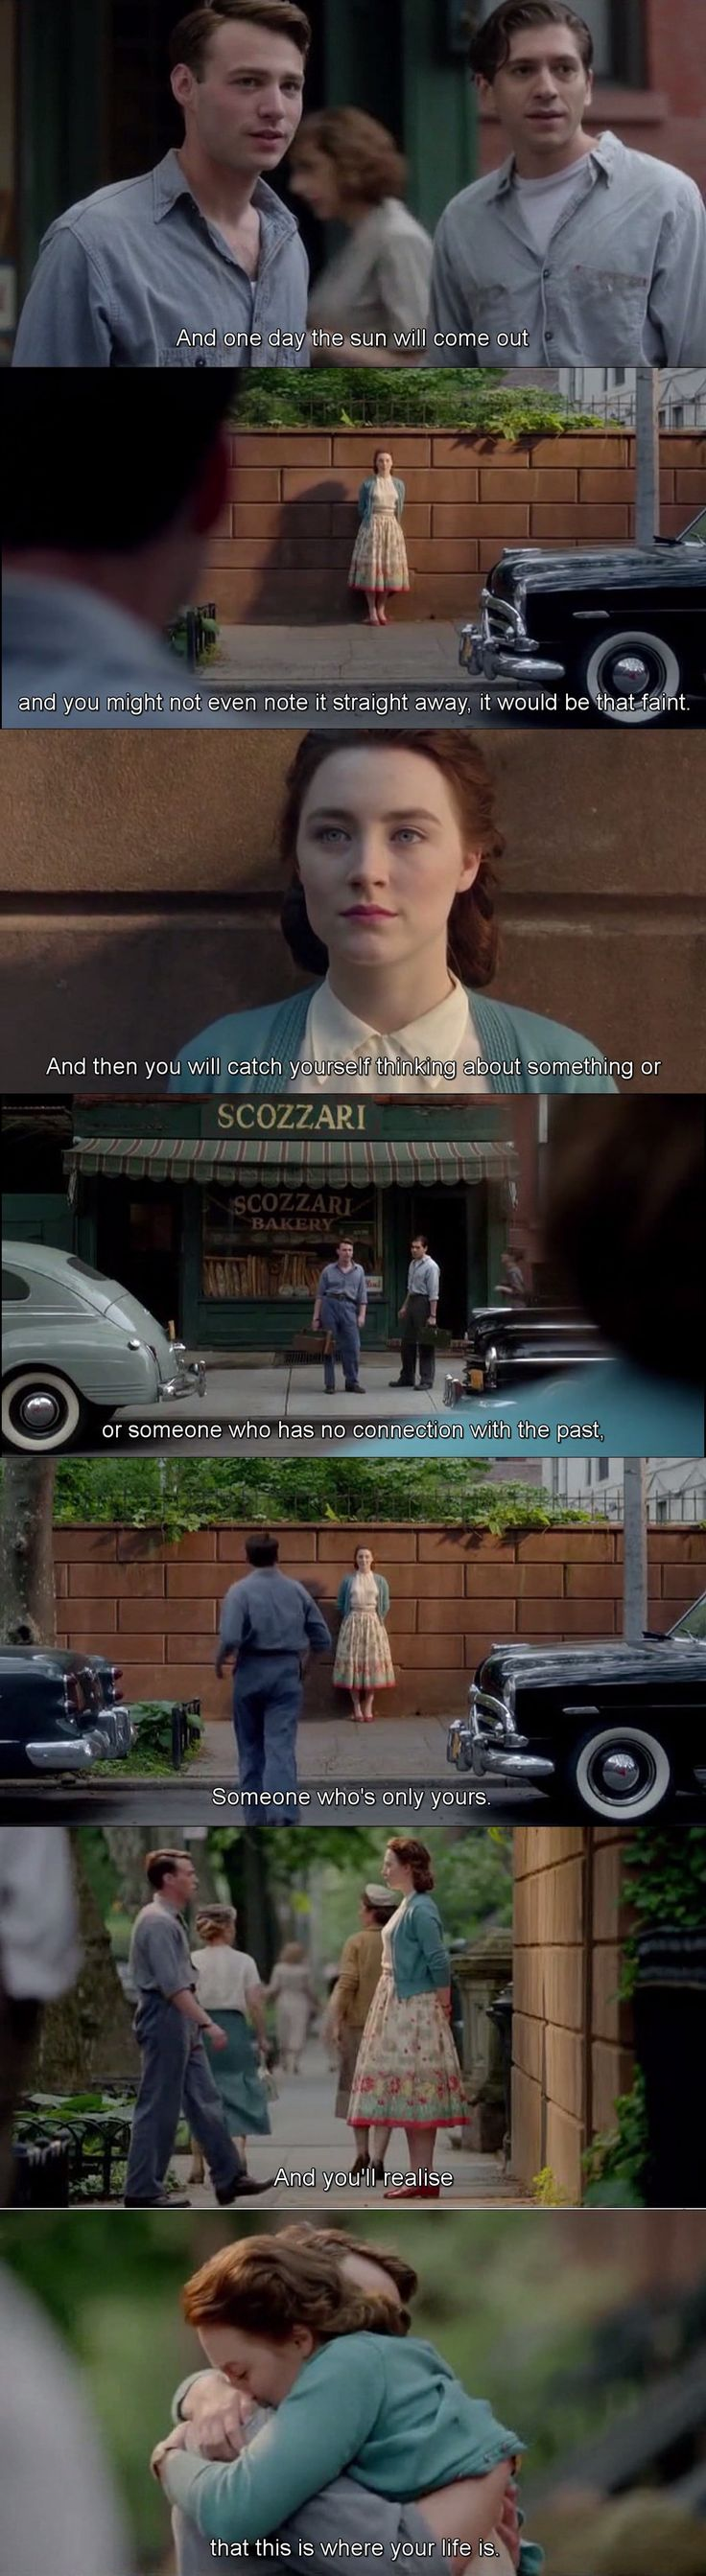 """THE BEST PART. This is when I lose it altogether."" Brooklyn movie 2015"